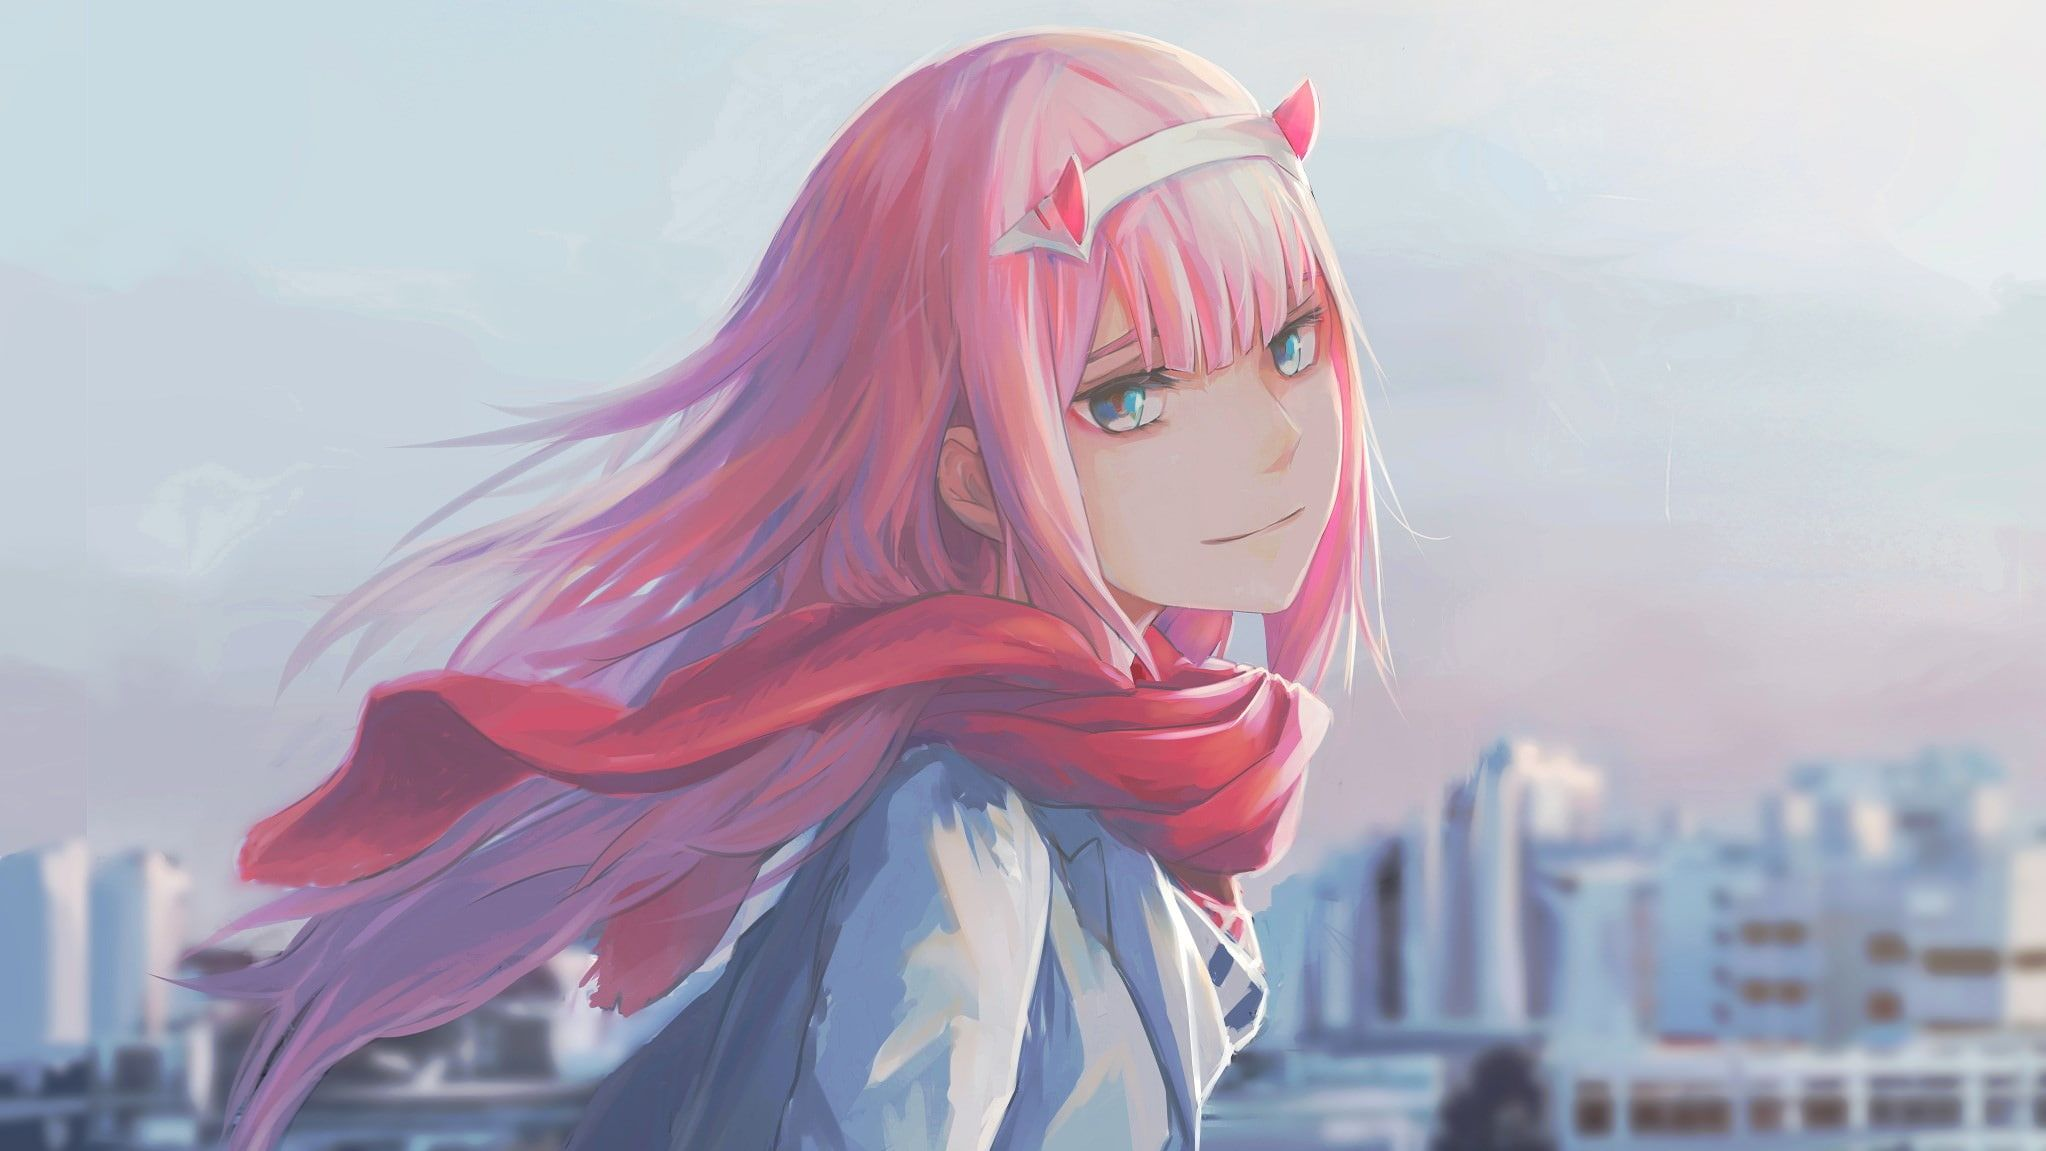 Anime Anime Girls Zero Two Darling In The Franxx Darling In The